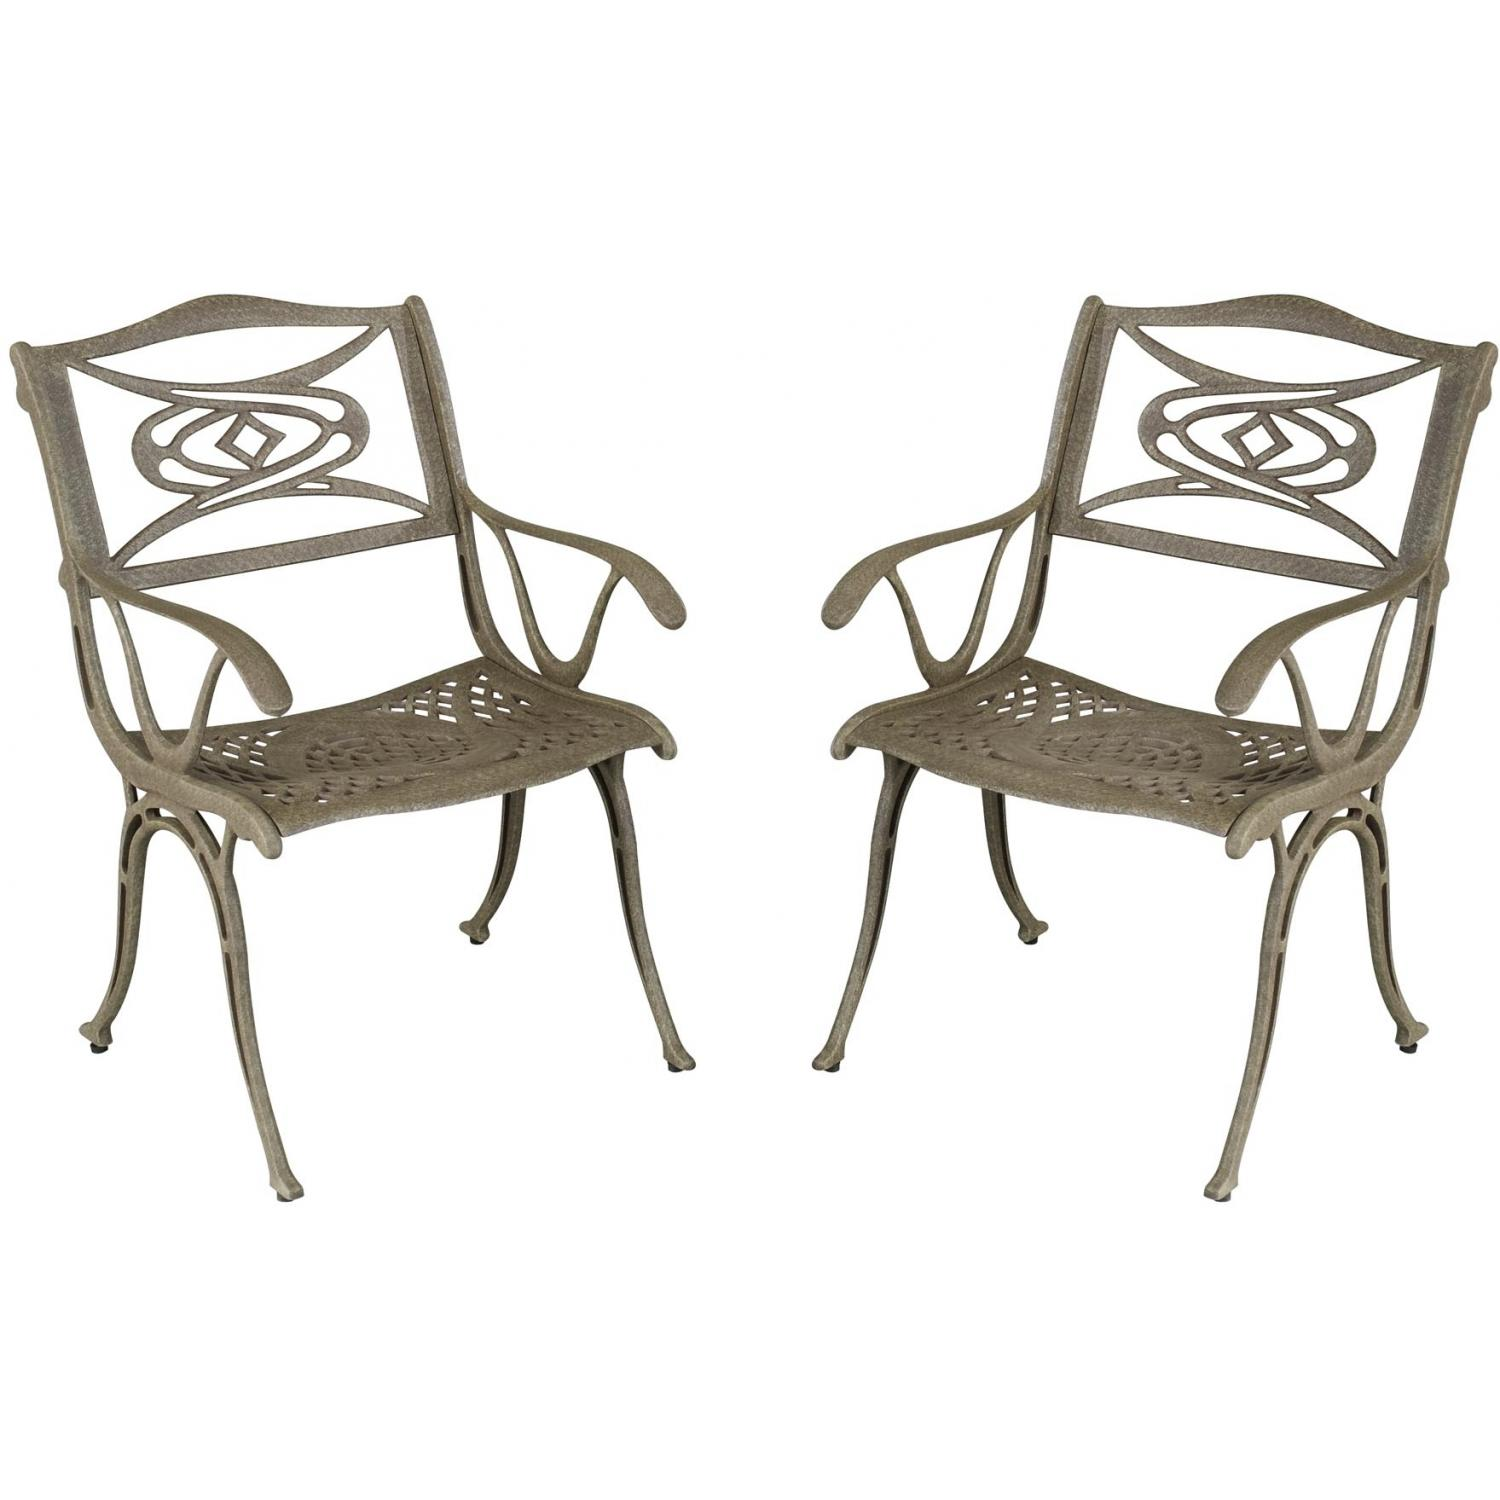 Home Styles Malibu Outdoor Patio Dining Chair - Set Of 2 - Taupe Antique Finish